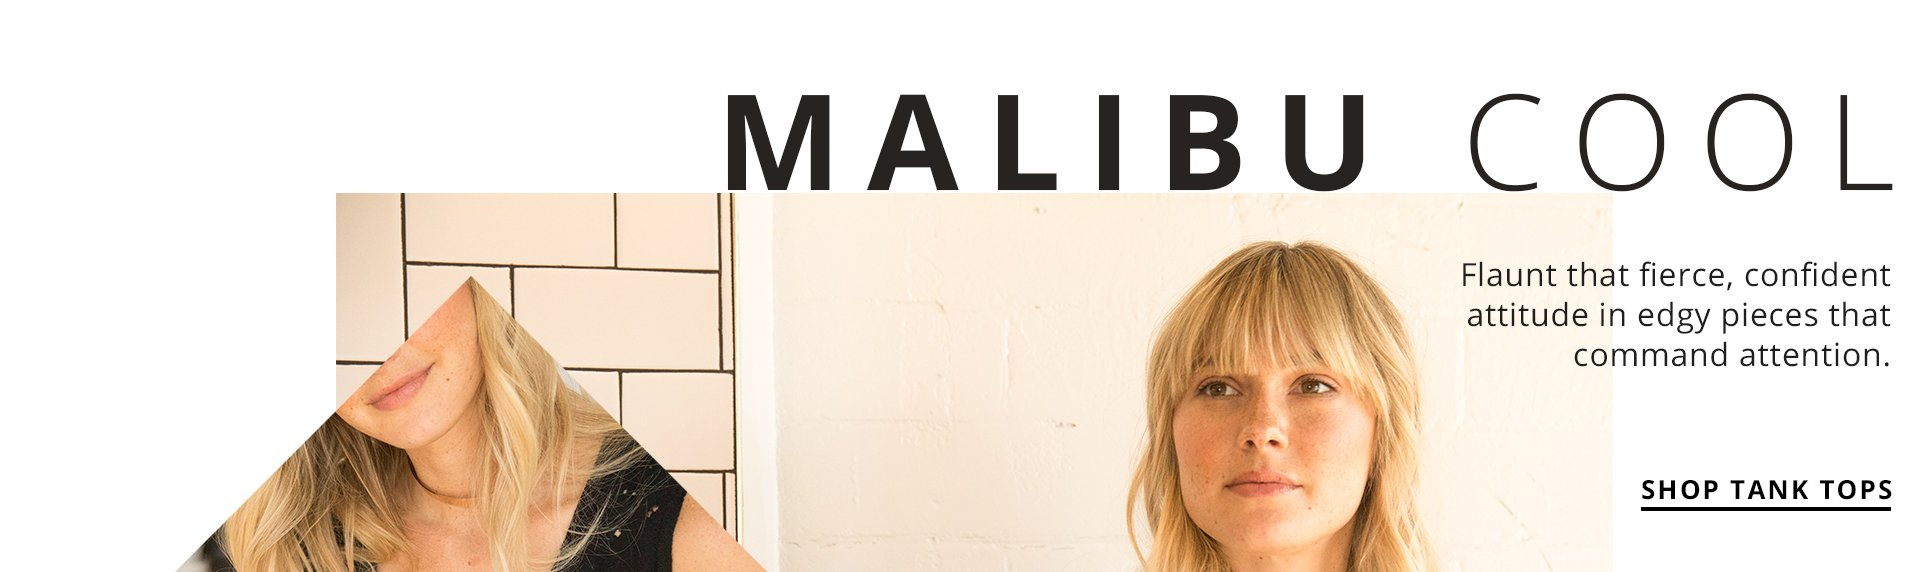 Malibu Cool. Flaunt that fierce, confident attitude in edgy pieces that command attention.